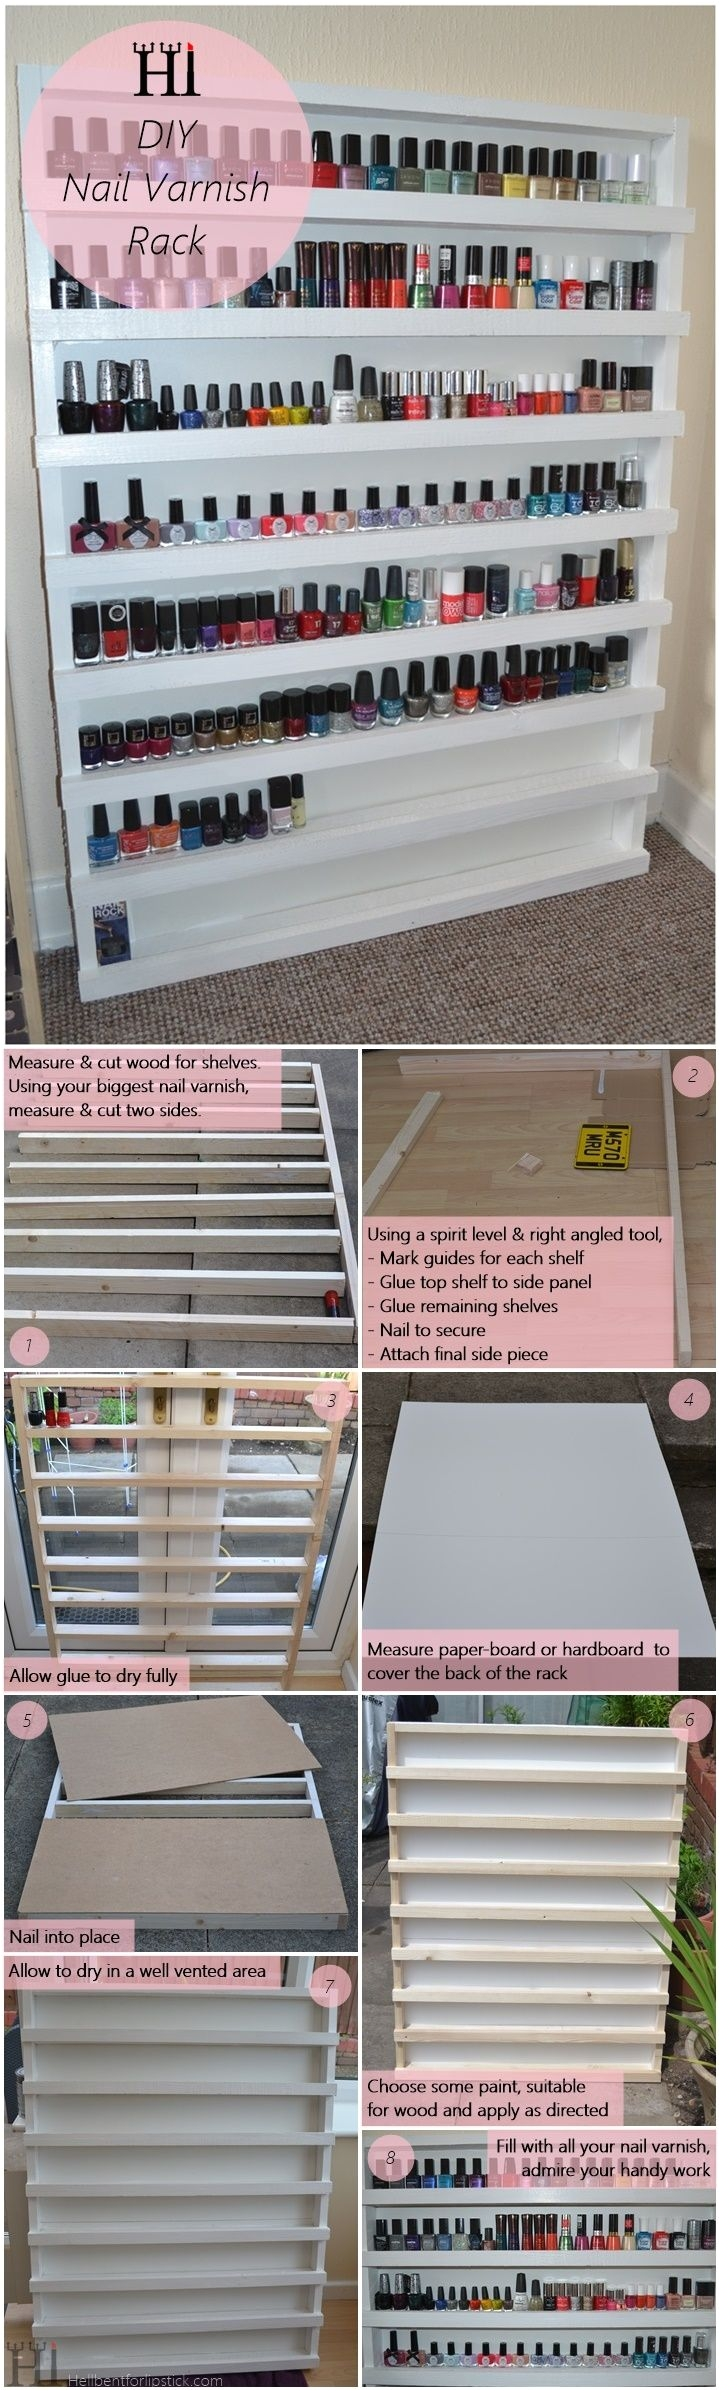 Ikea Hack Nail Polish Rack 32 Best Nails Images On Pinterest Nail Scissors Hair Style and